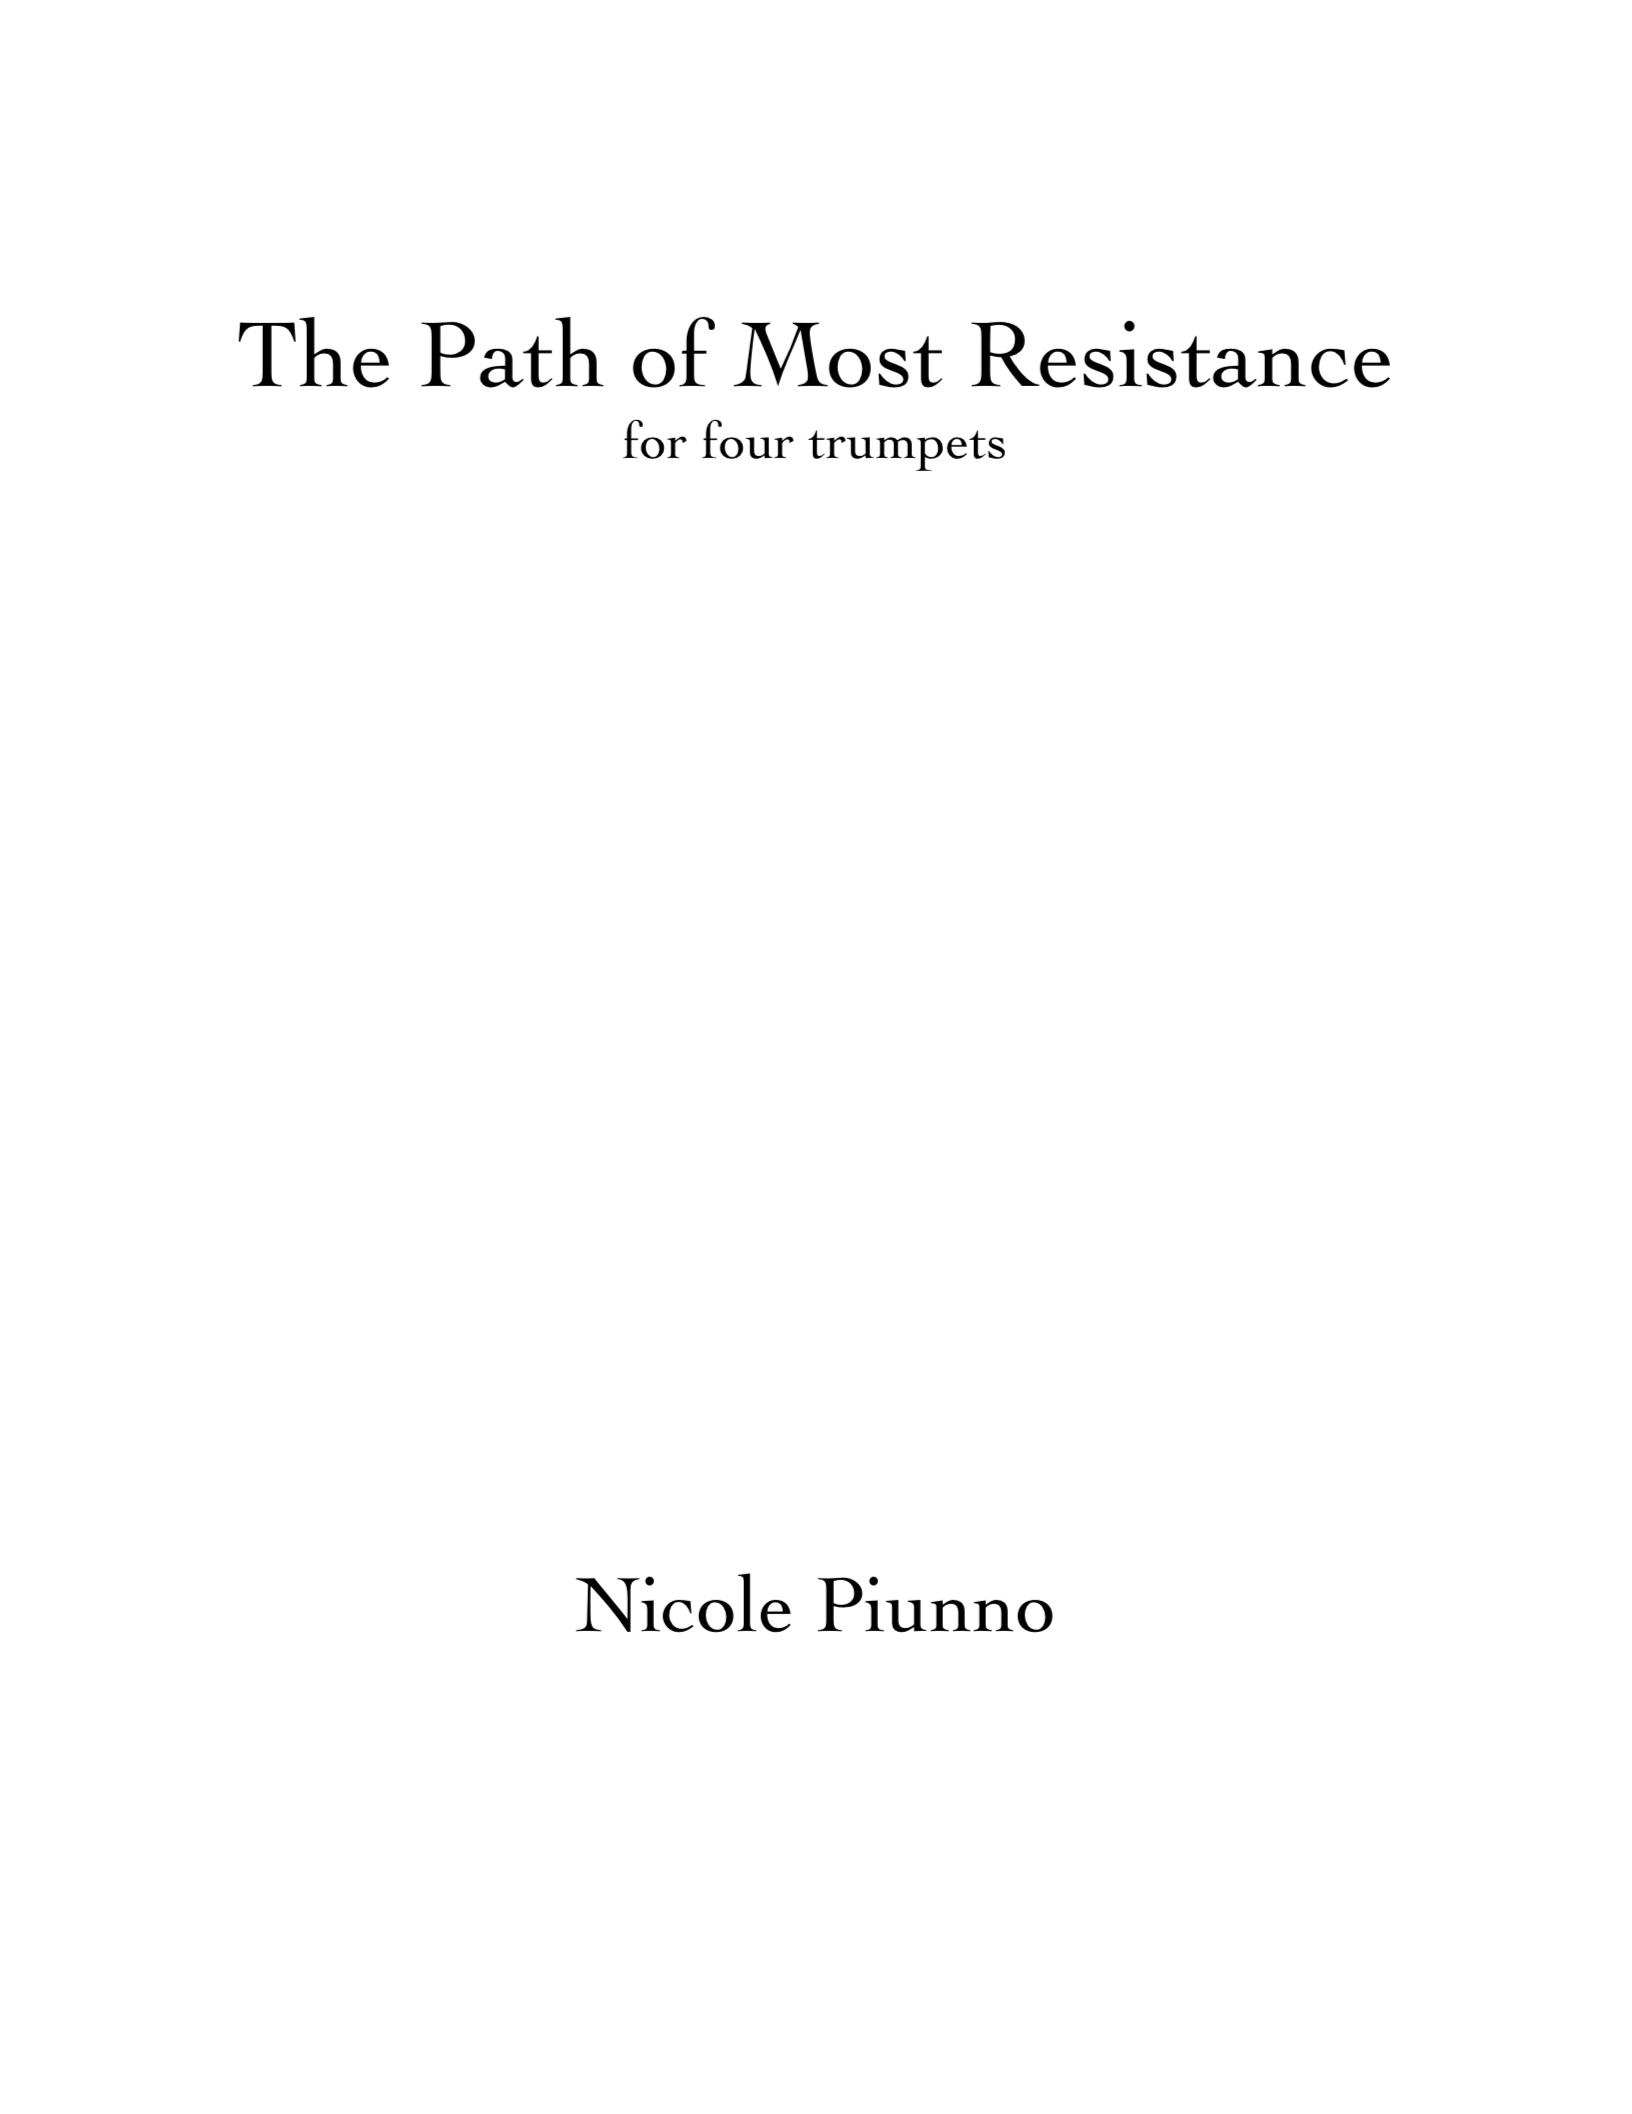 The Path Of Most Resistance  by Nicole Piunno